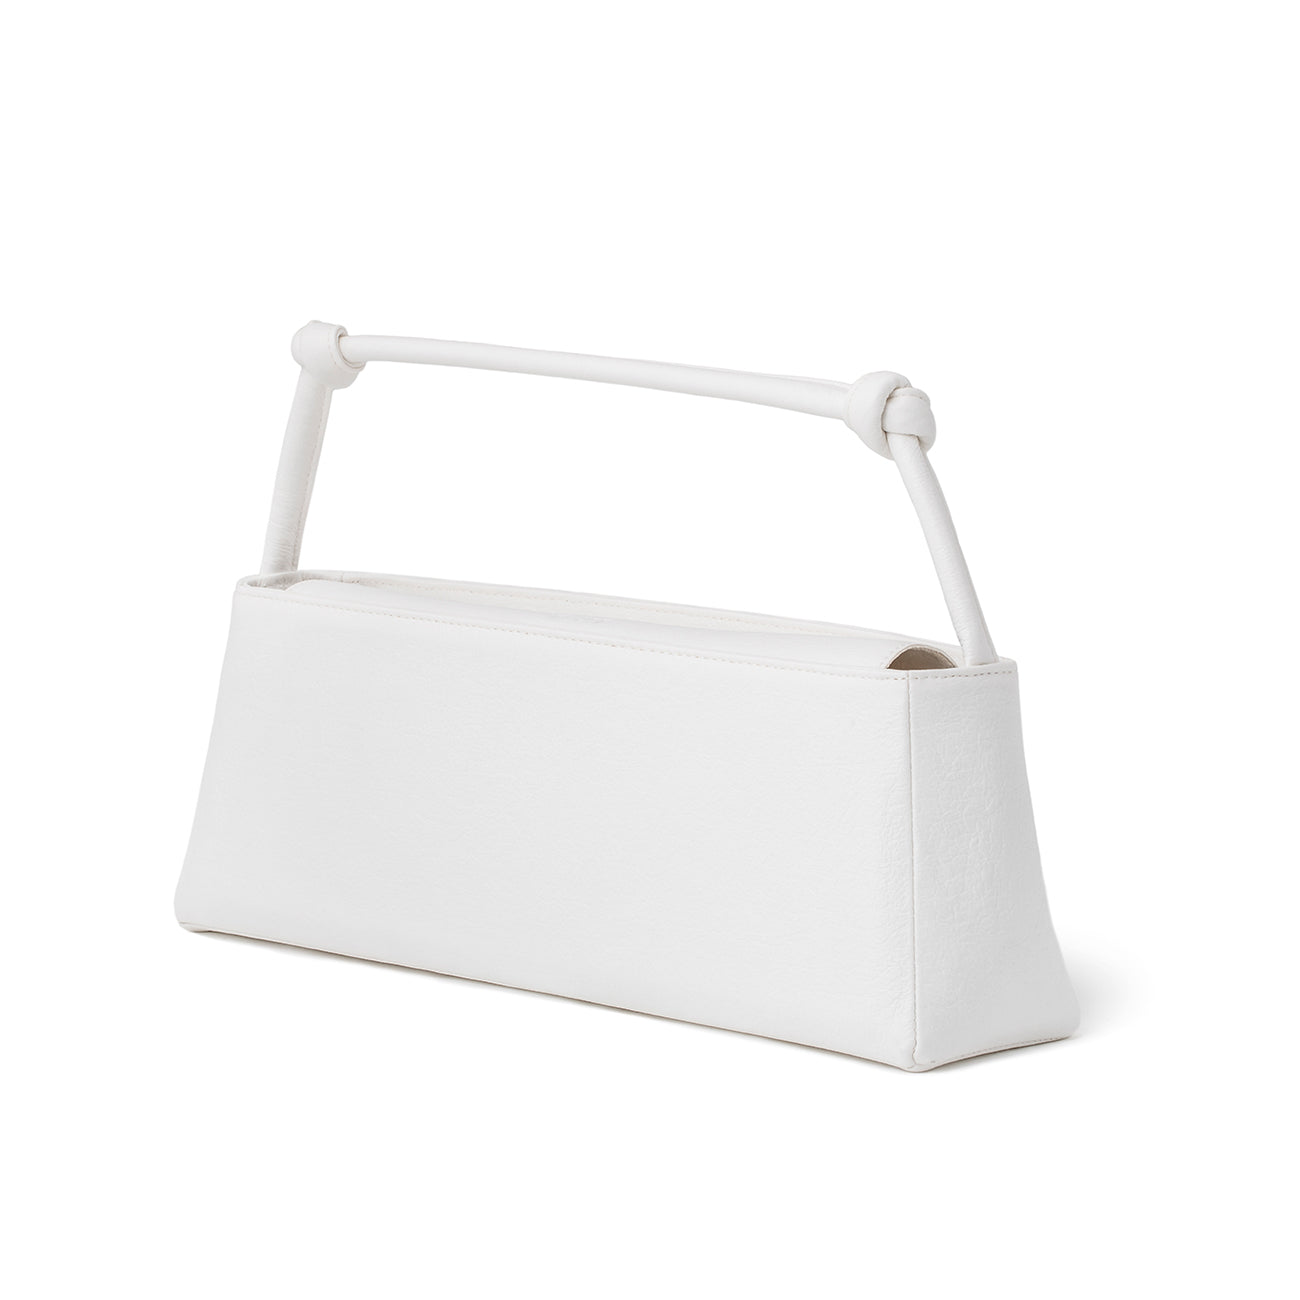 Kithara Oblong Bag in White